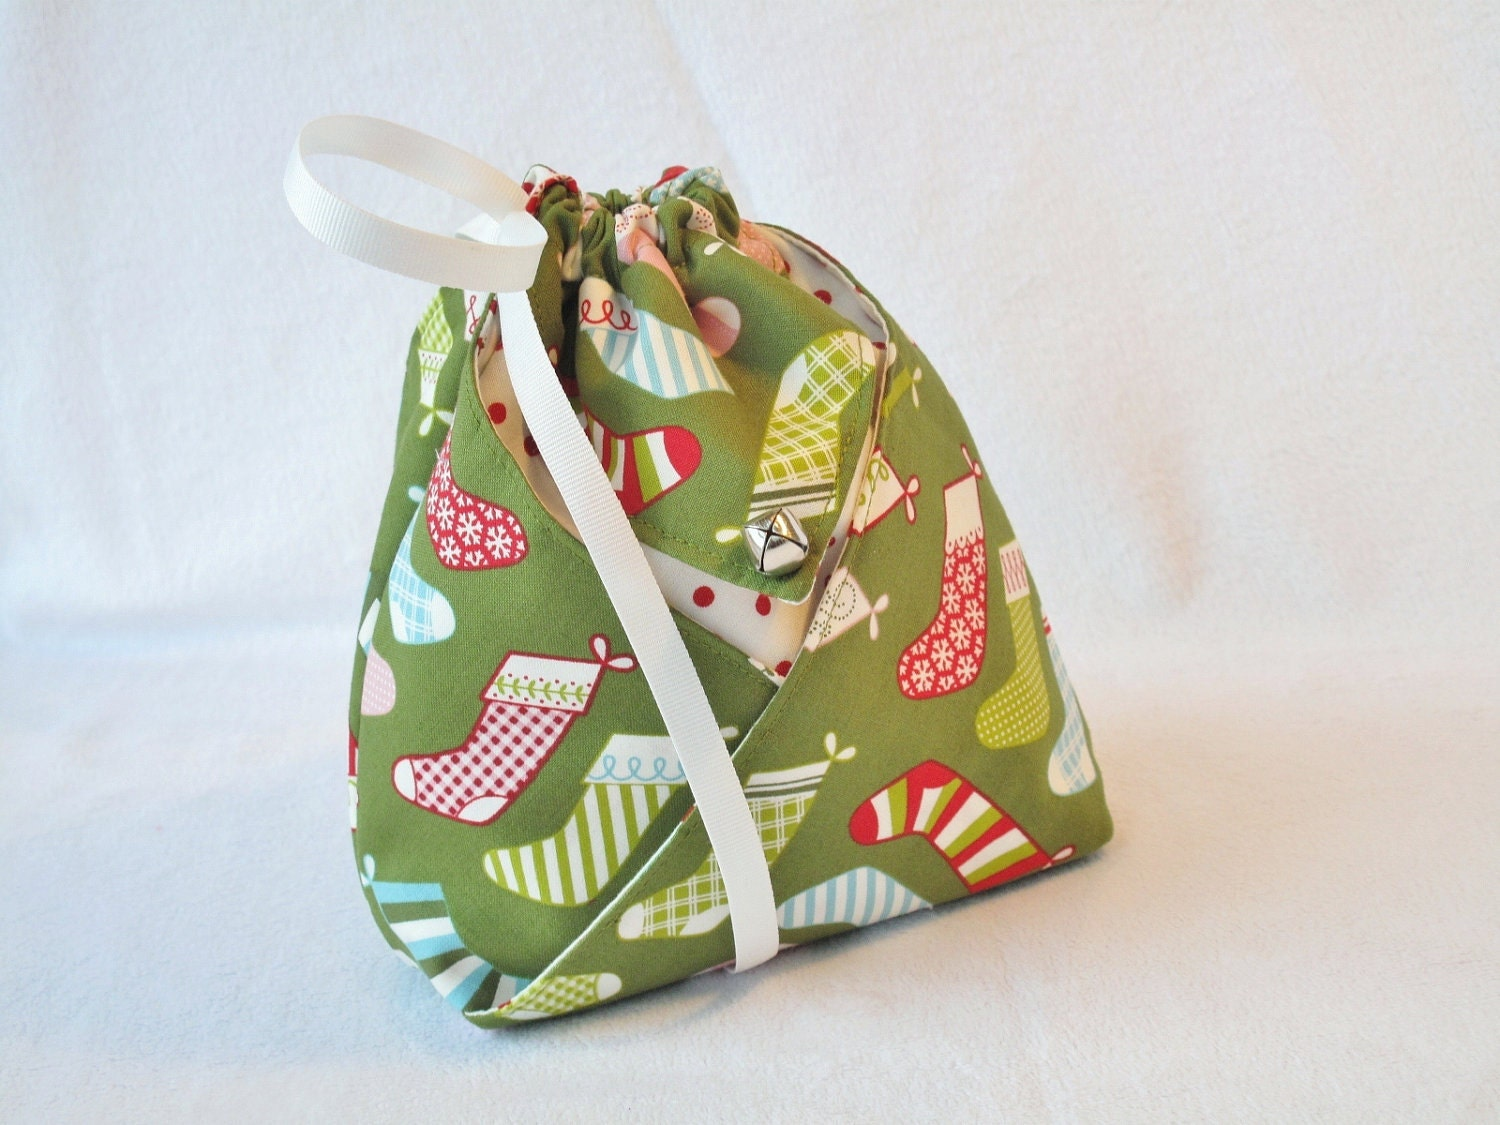 Origami Gift Bag Stockings on Green Sleigh by ... - photo#20